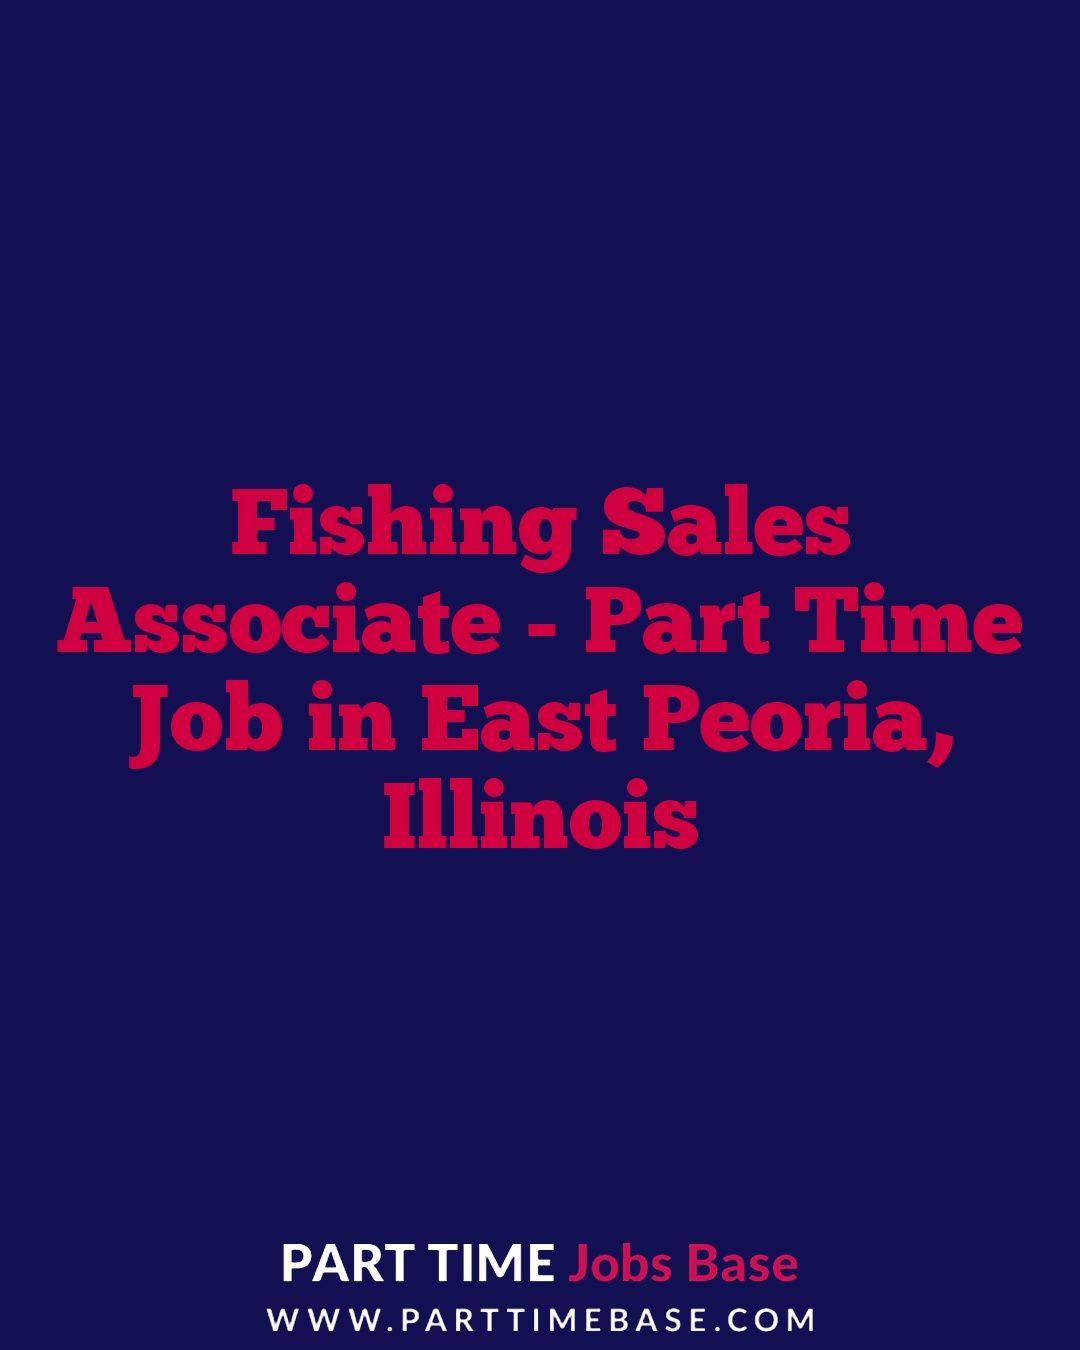 Fishing Sales Associate Part Time Job in East Peoria